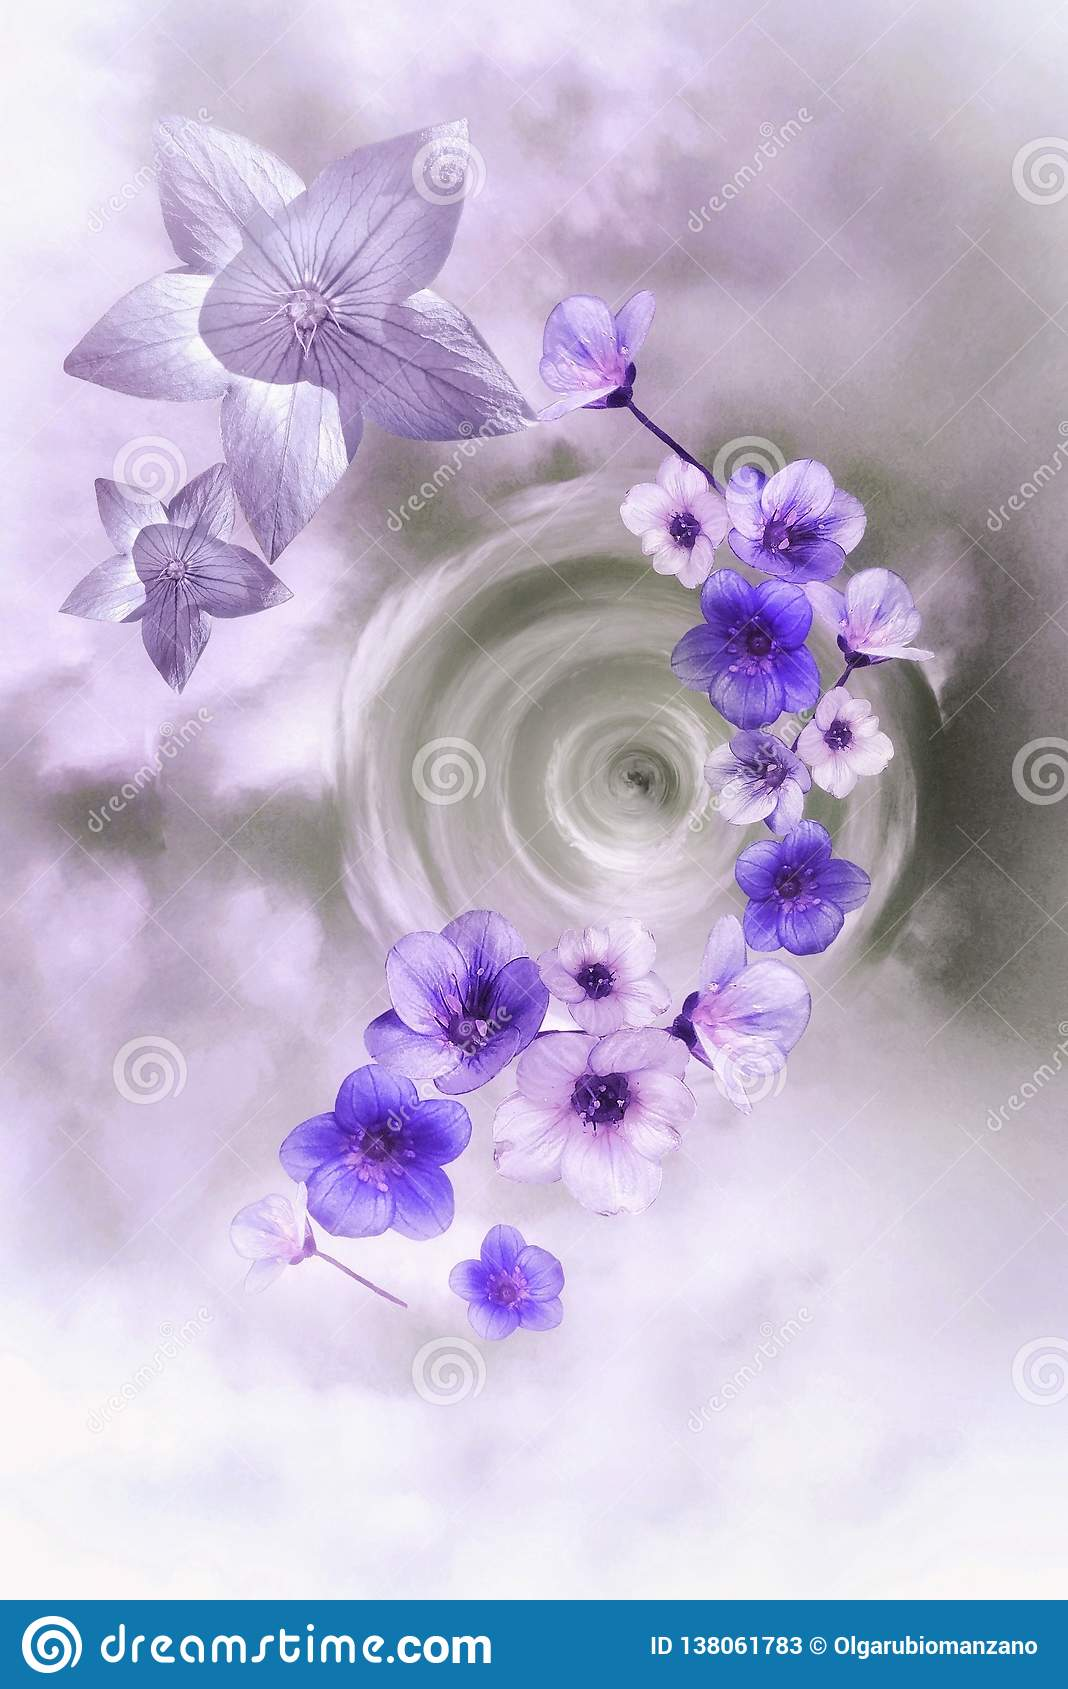 Purple and white flowers in moving background